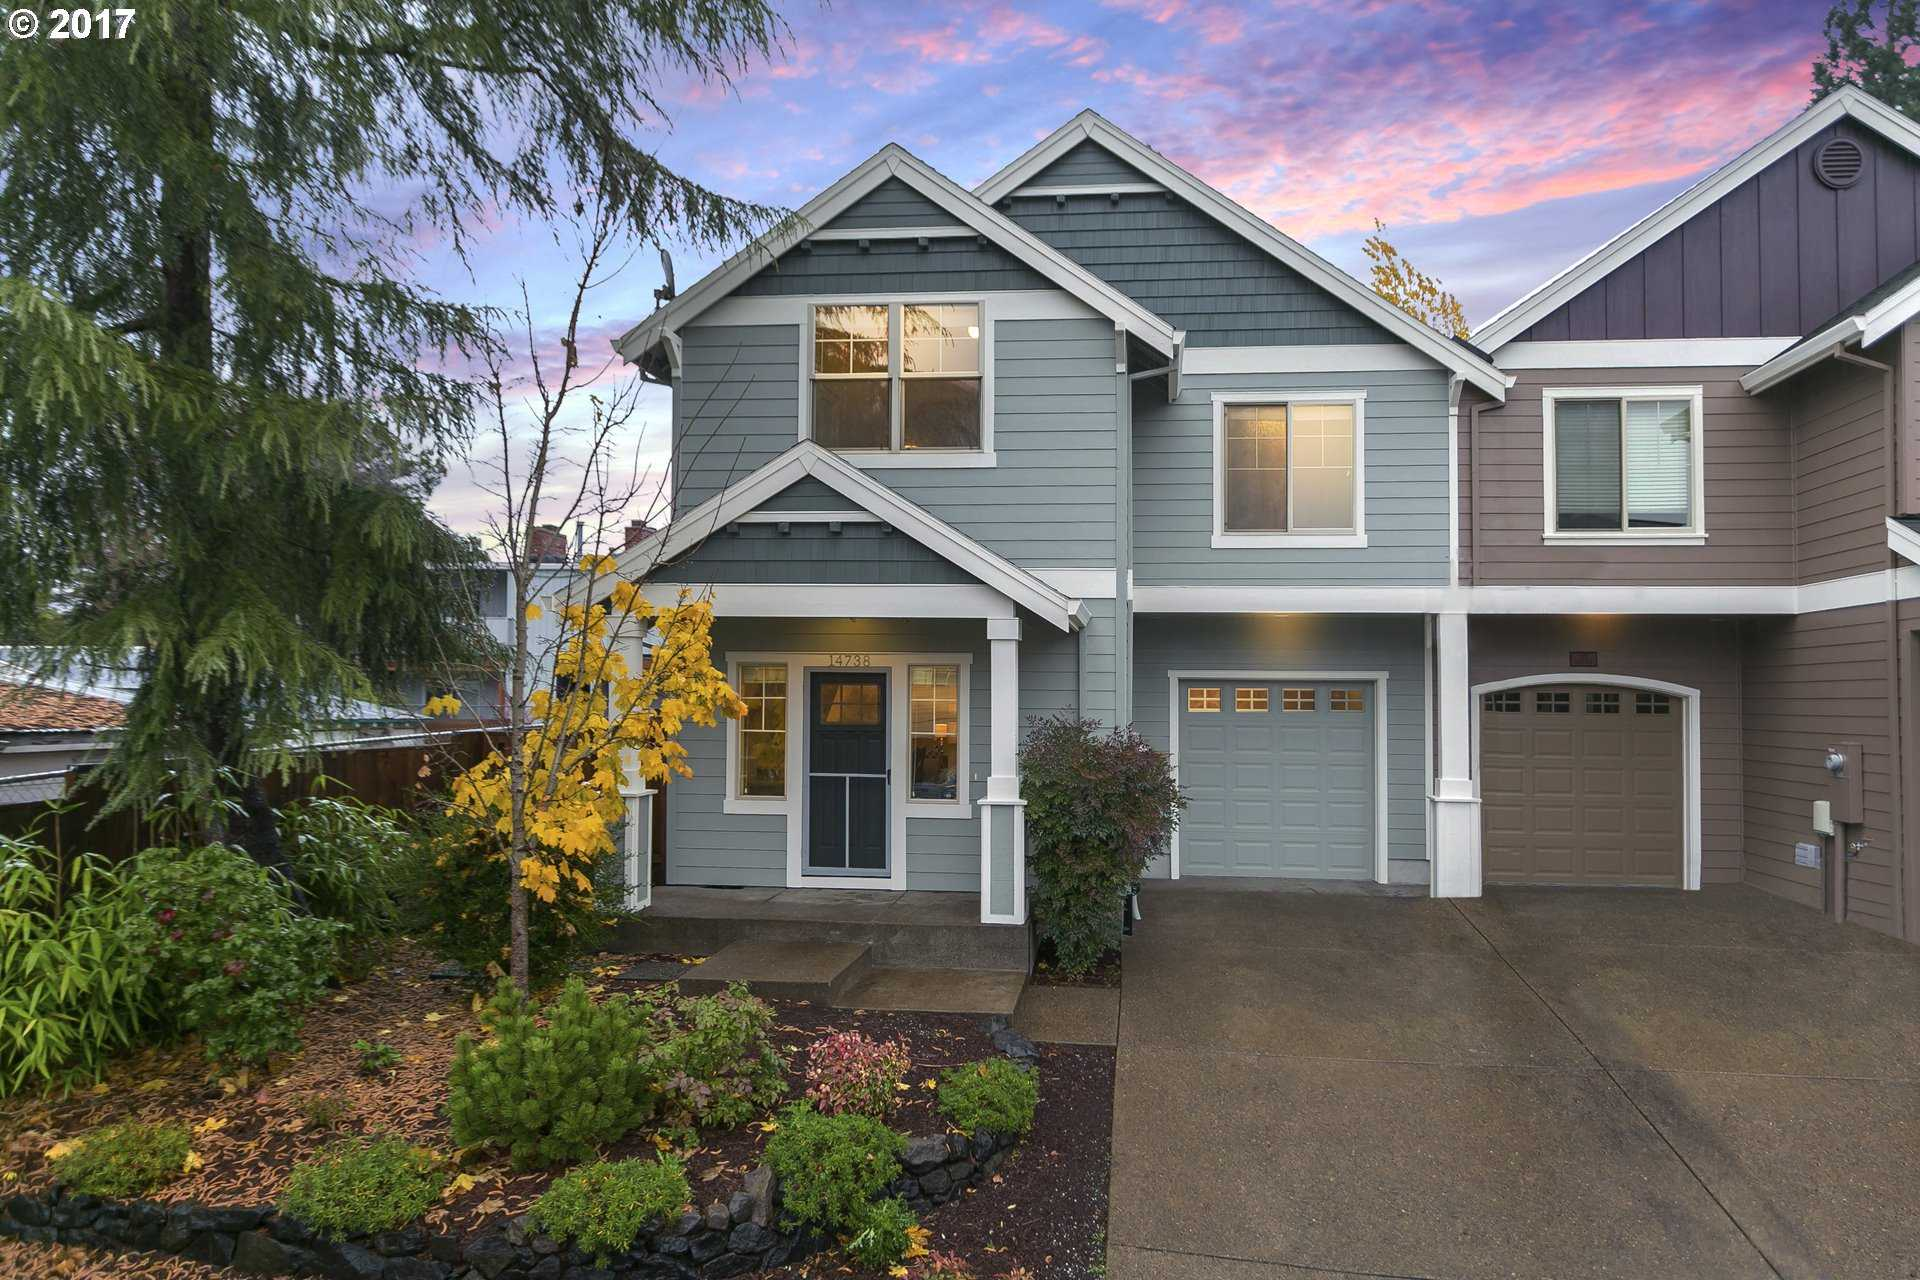 $310,000 - 3Br/3Ba -  for Sale in Sage Green, Beaverton